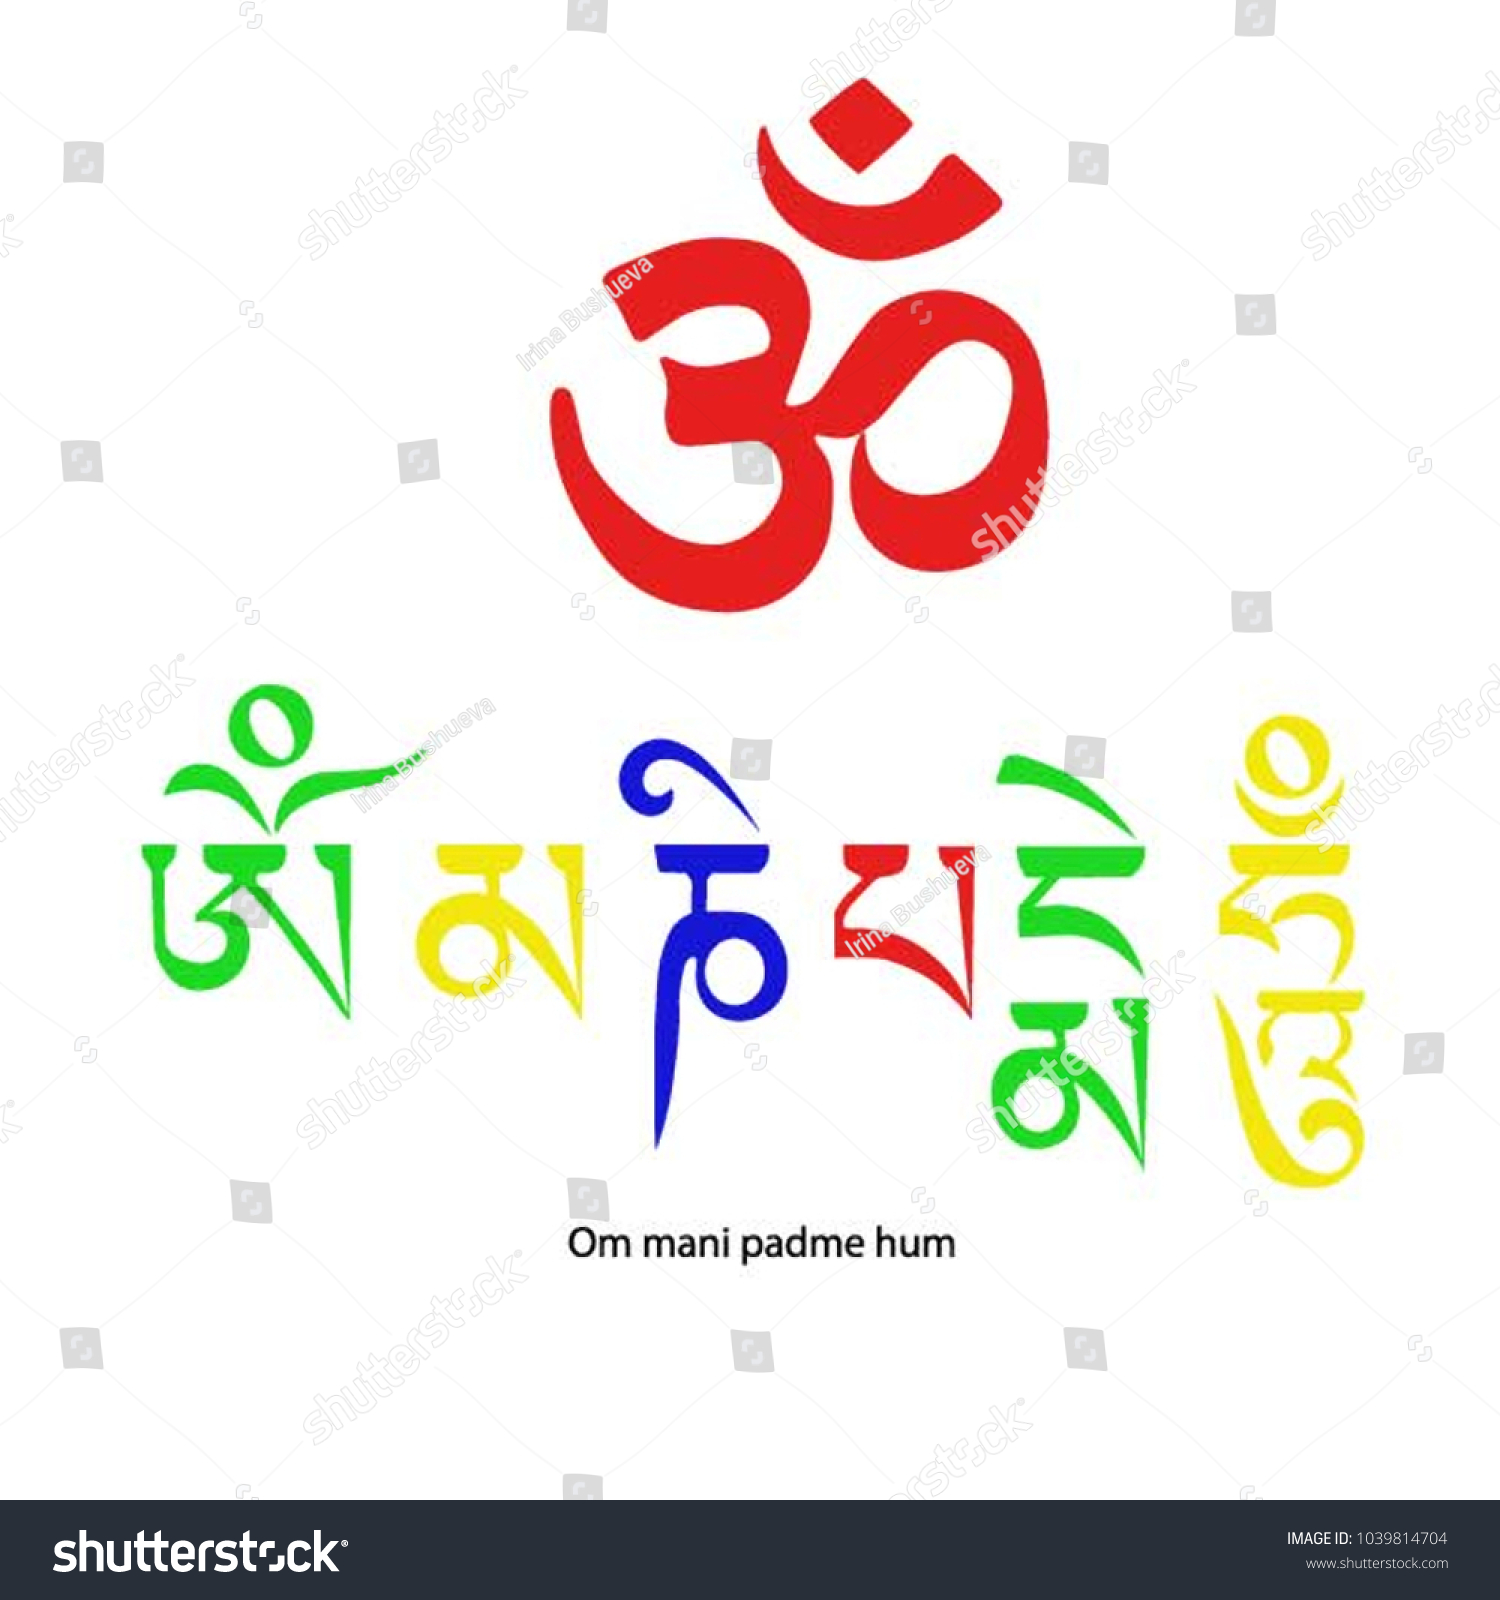 Om mani padme hum buddhist symbol stock vector 1039814704 om mani padme hum buddhist symbol isolated multi colored vector on a white background buycottarizona